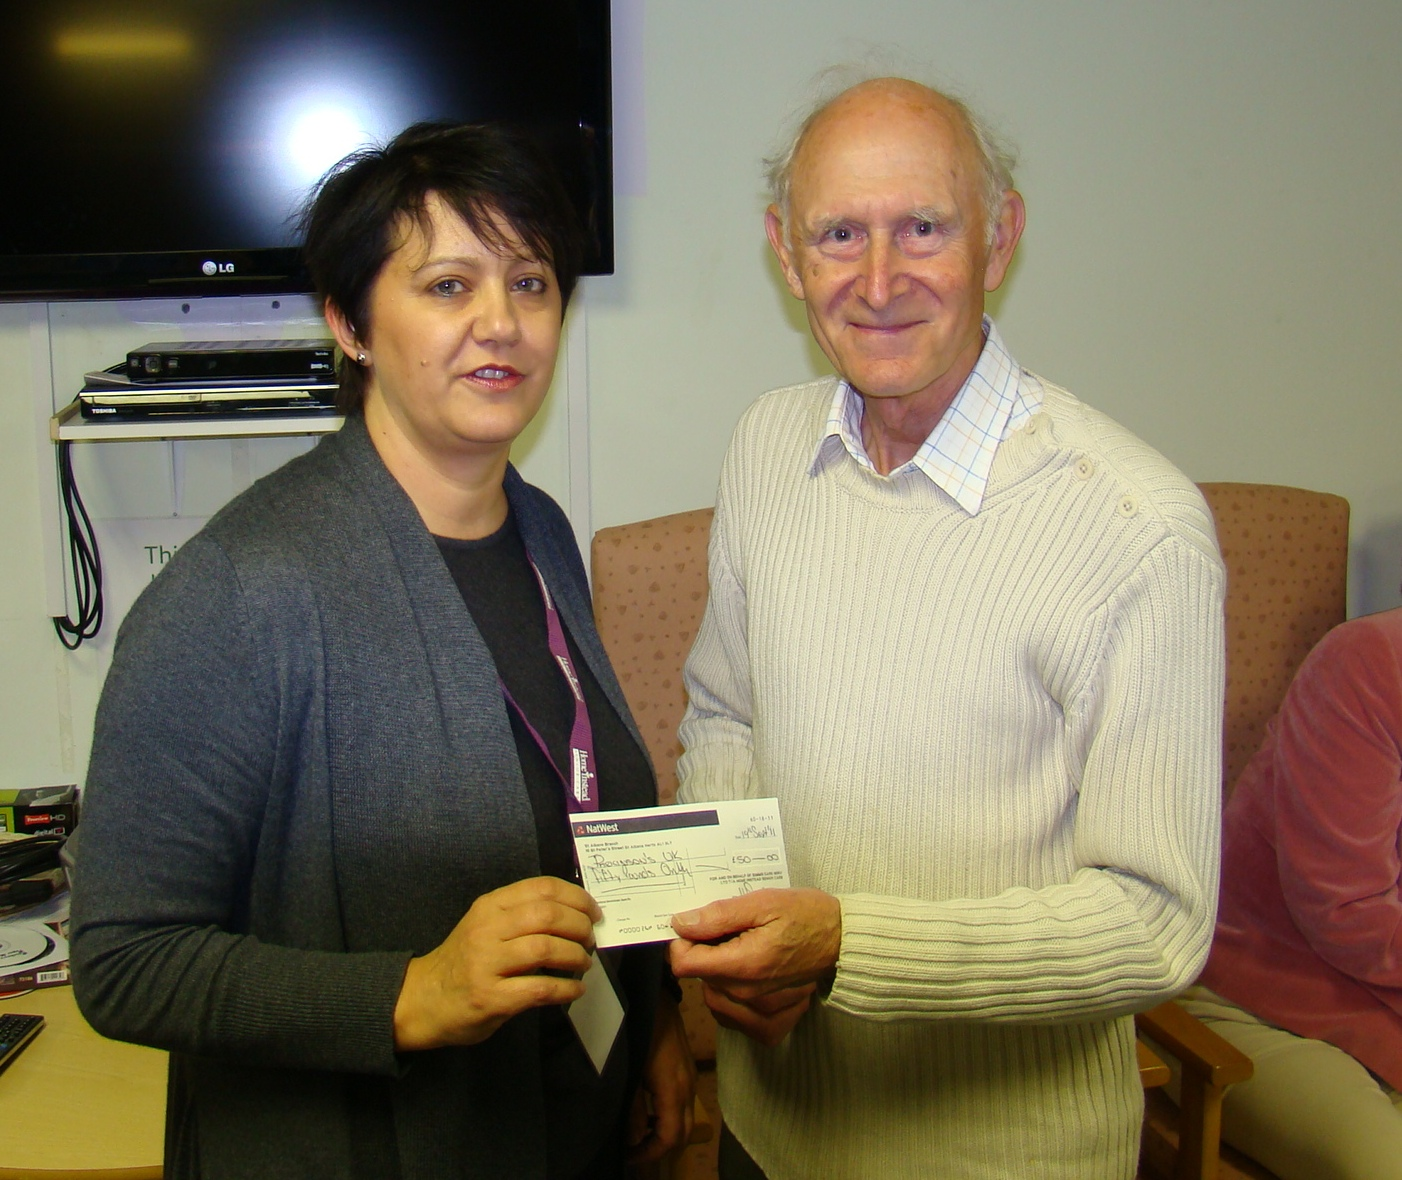 Home Instead Welwyn and Hatfield owner Heather Simms and Don Ellis, the Chairman of the Parkinson's UK Welwyn Hatfield Branch